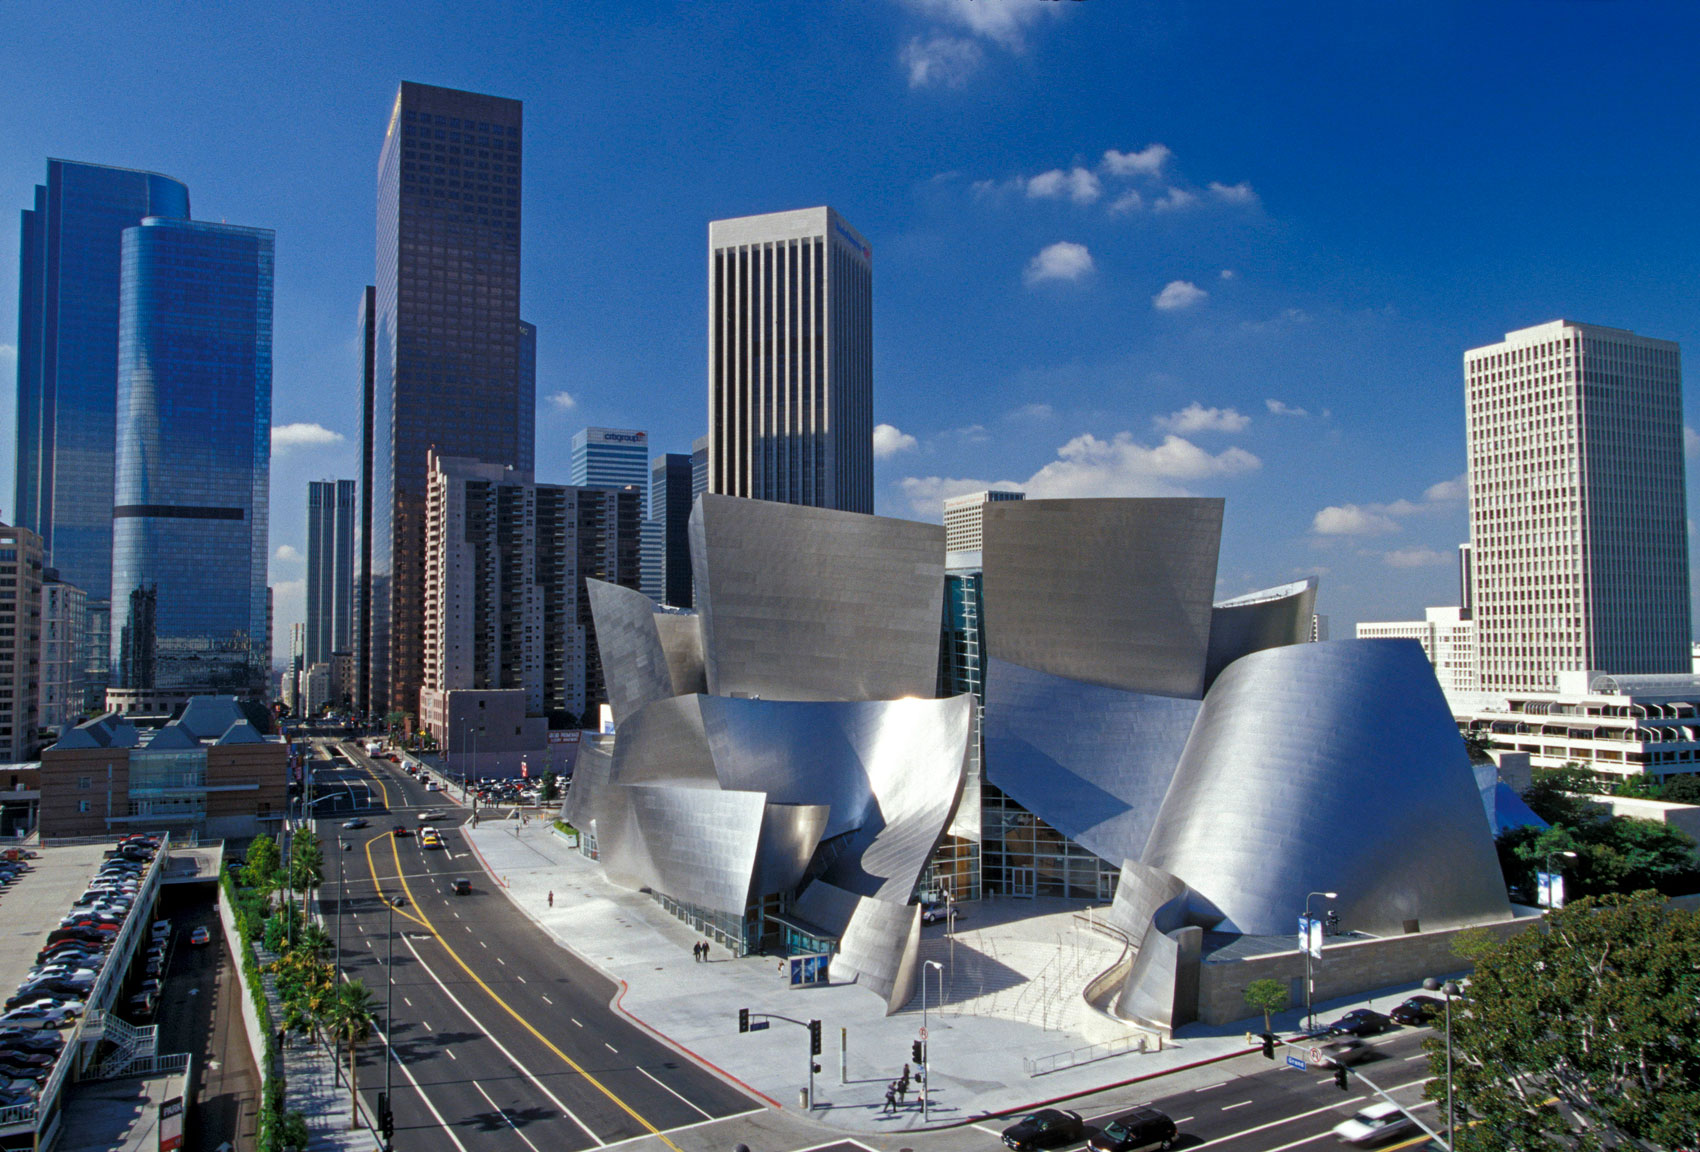 Walt Disney Concert Hall, Los Angeles, CA, Designed by Frank Gehry | © Frank O. Gehry. Getty Research Institute, Los Angeles (2017.M.66), Frank Gehry Papers